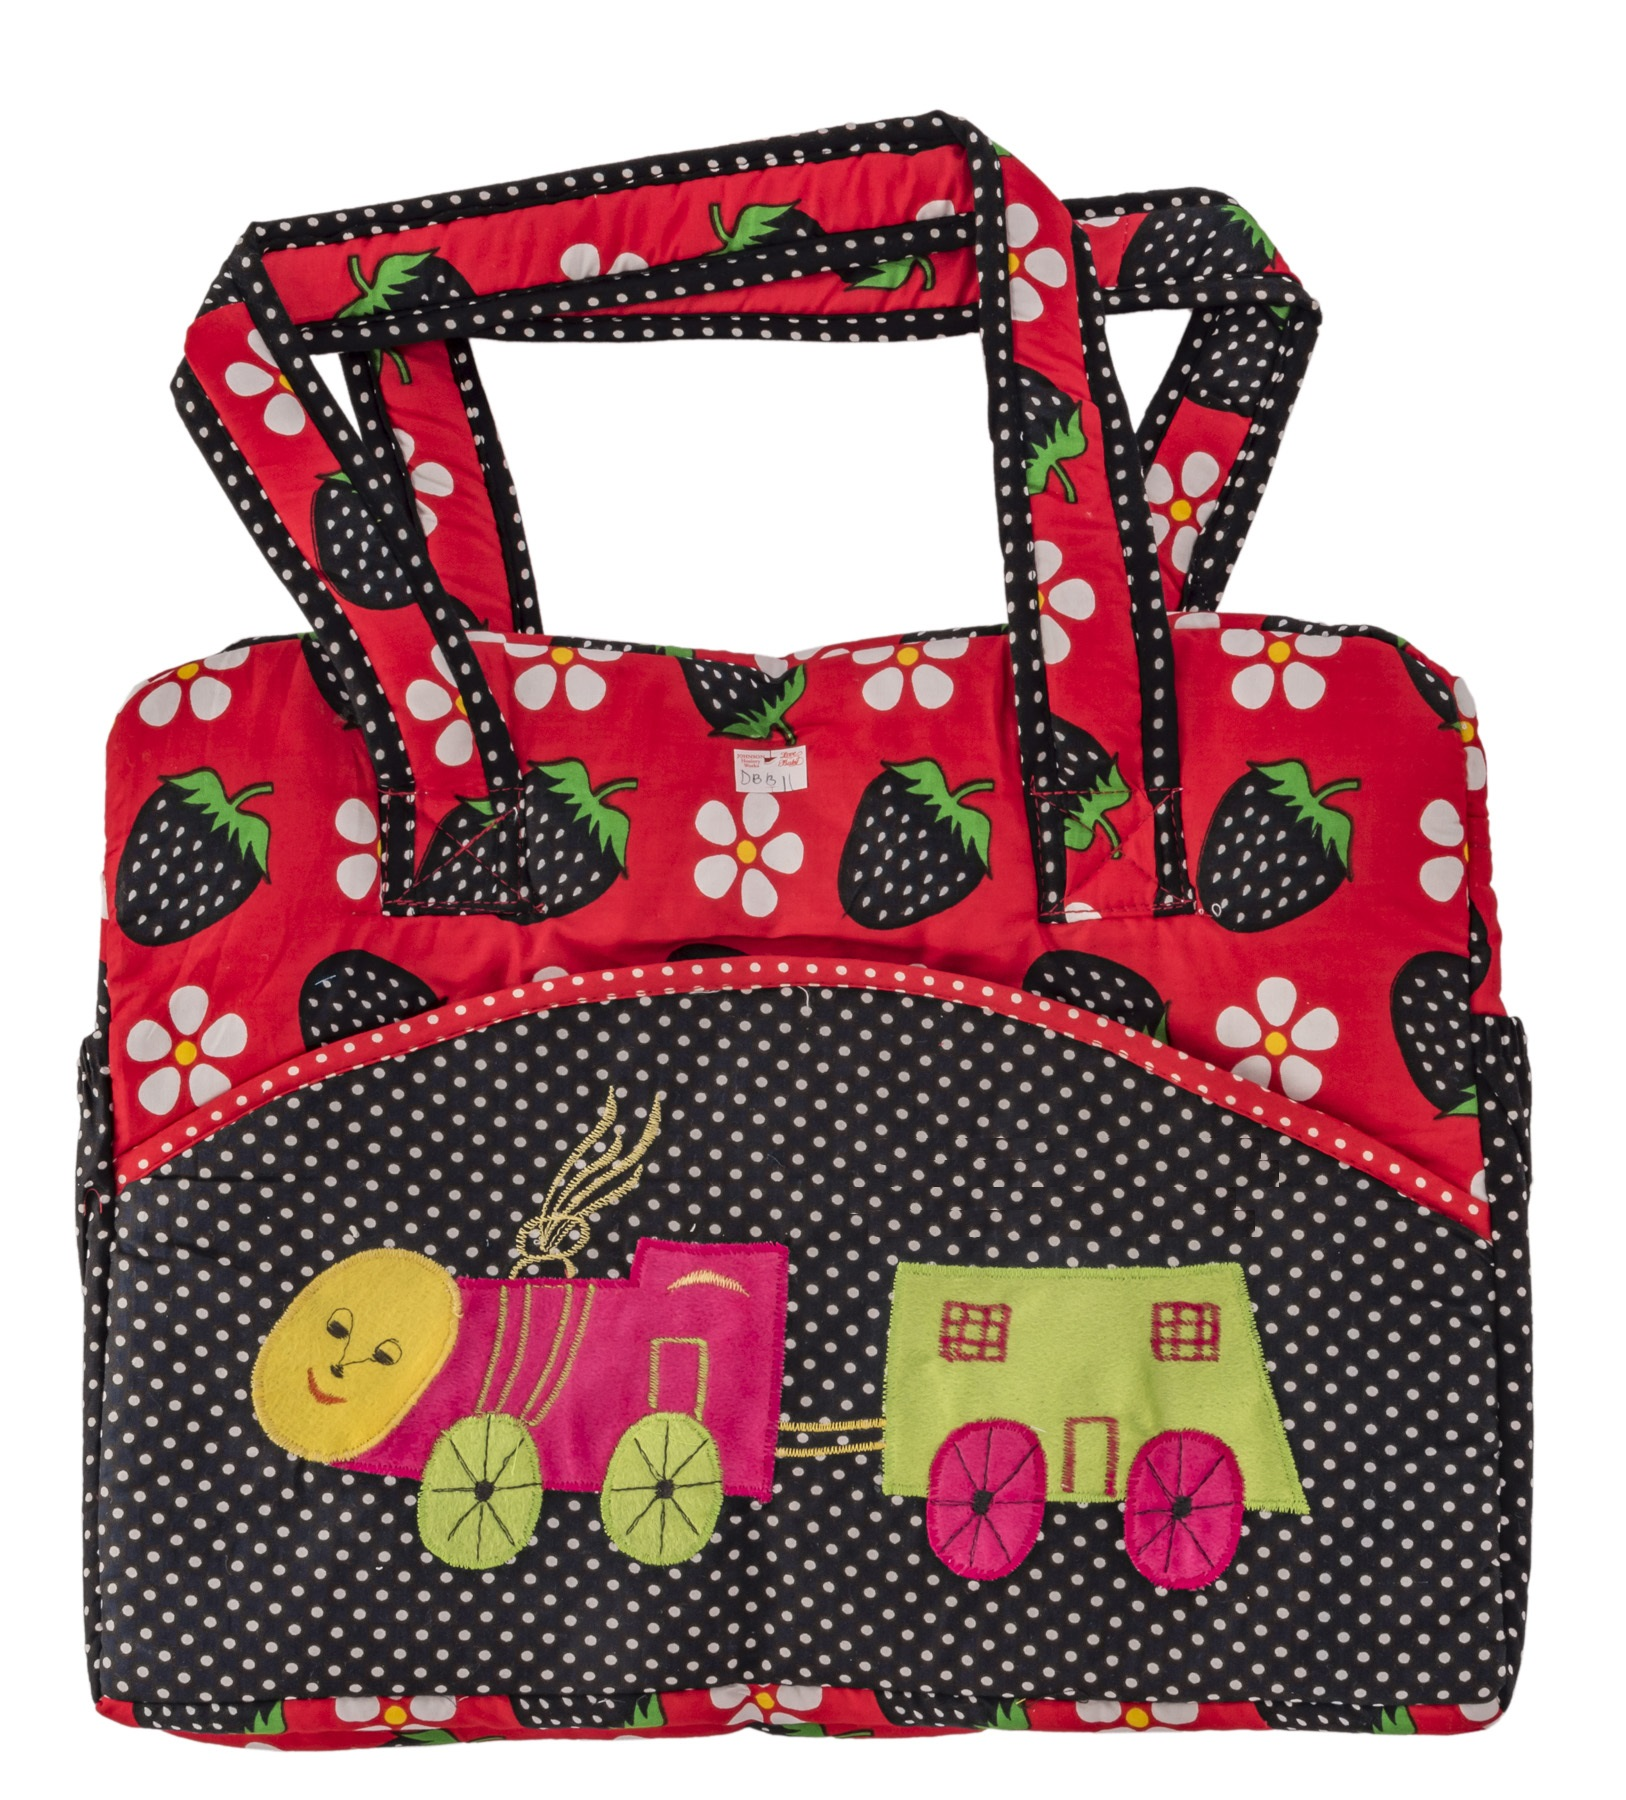 Cloth Bag Cherry Printed from Love Baby DBB11 Red P1